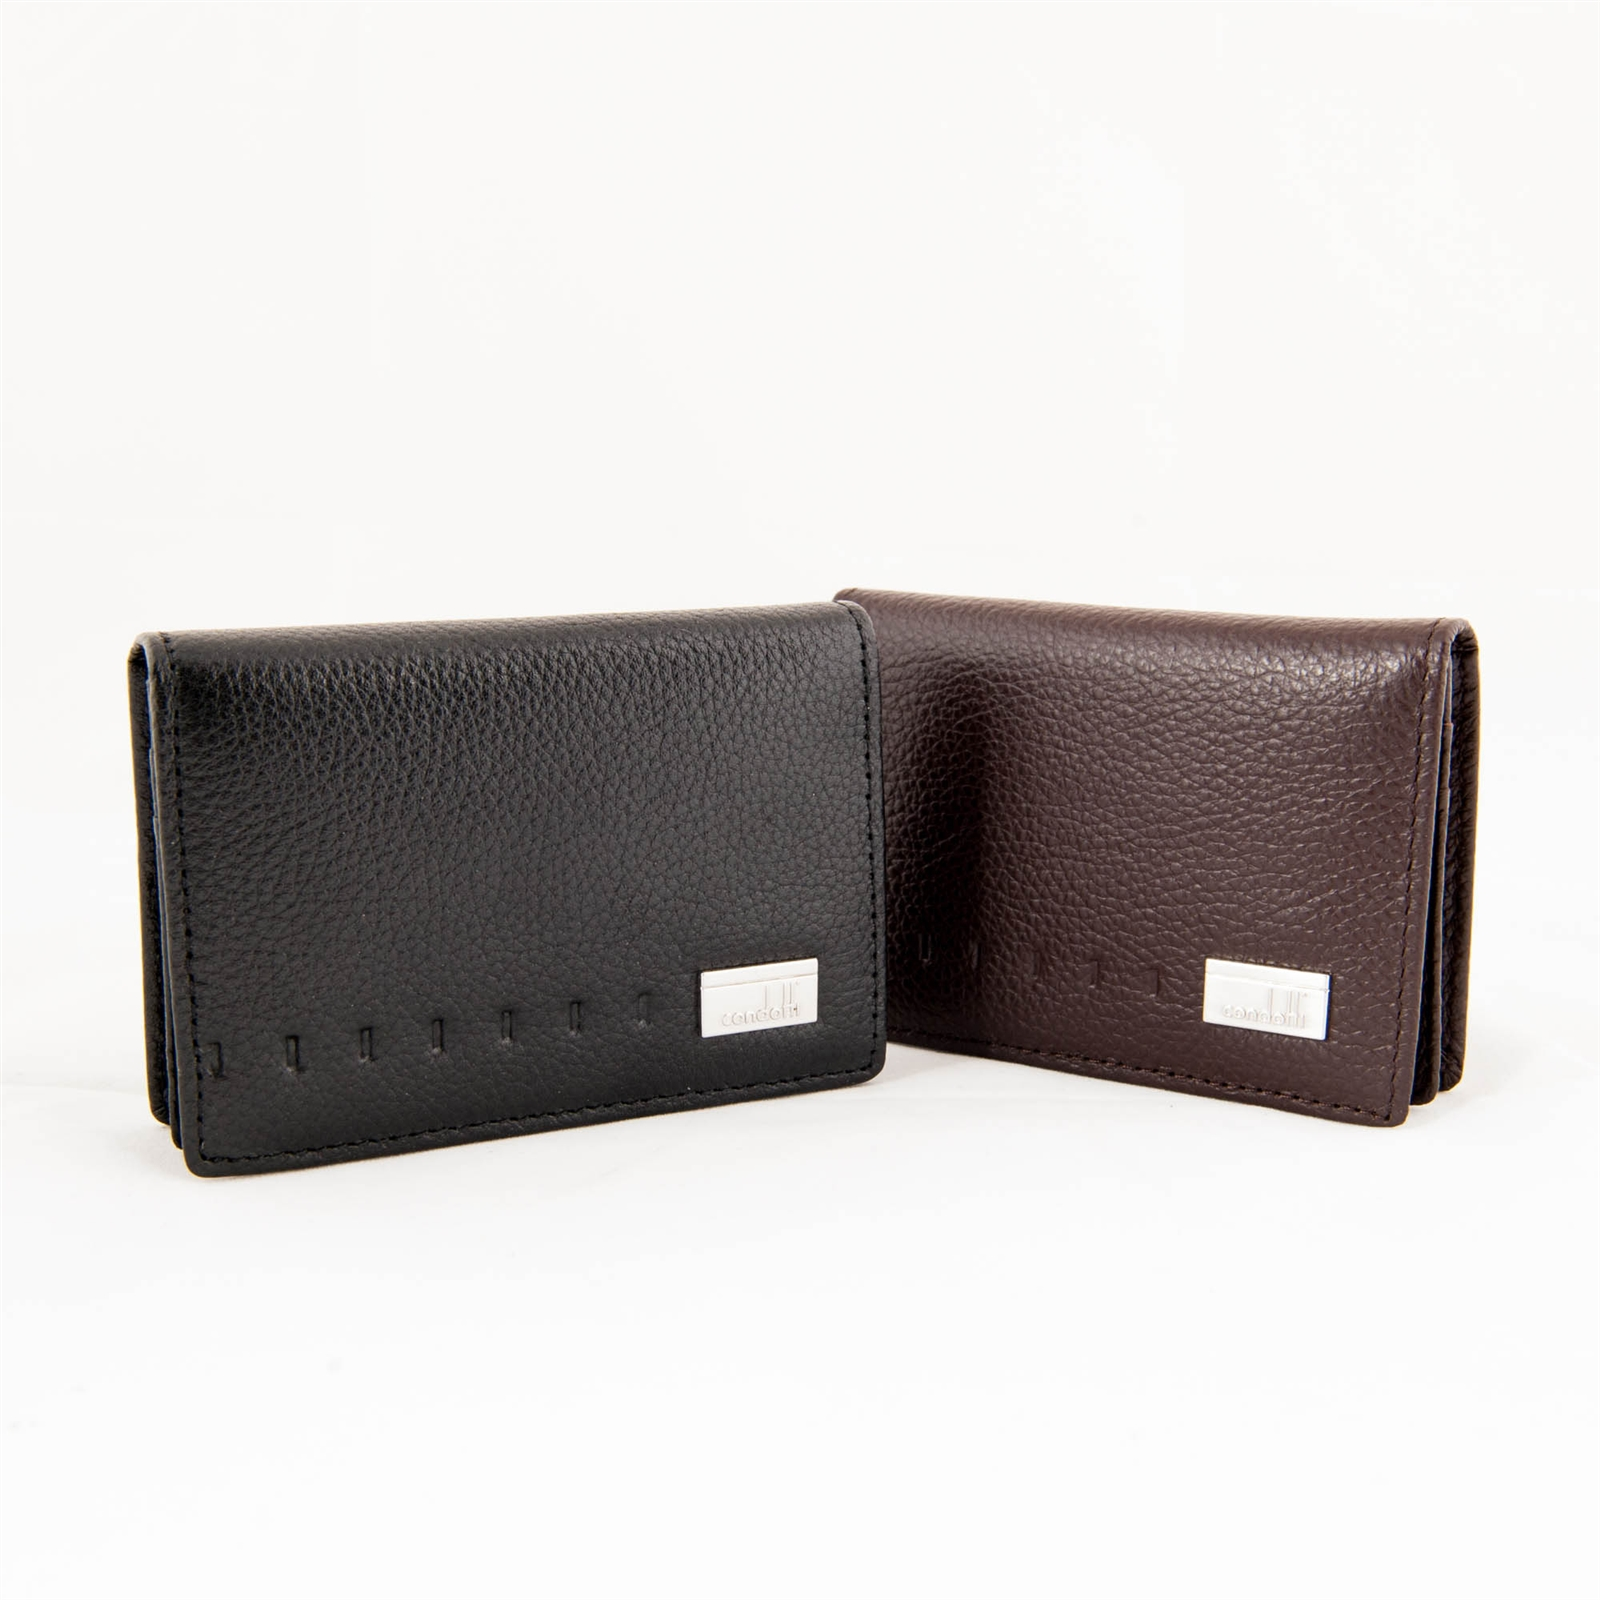 LEATHER CARD WALLET 142-1303